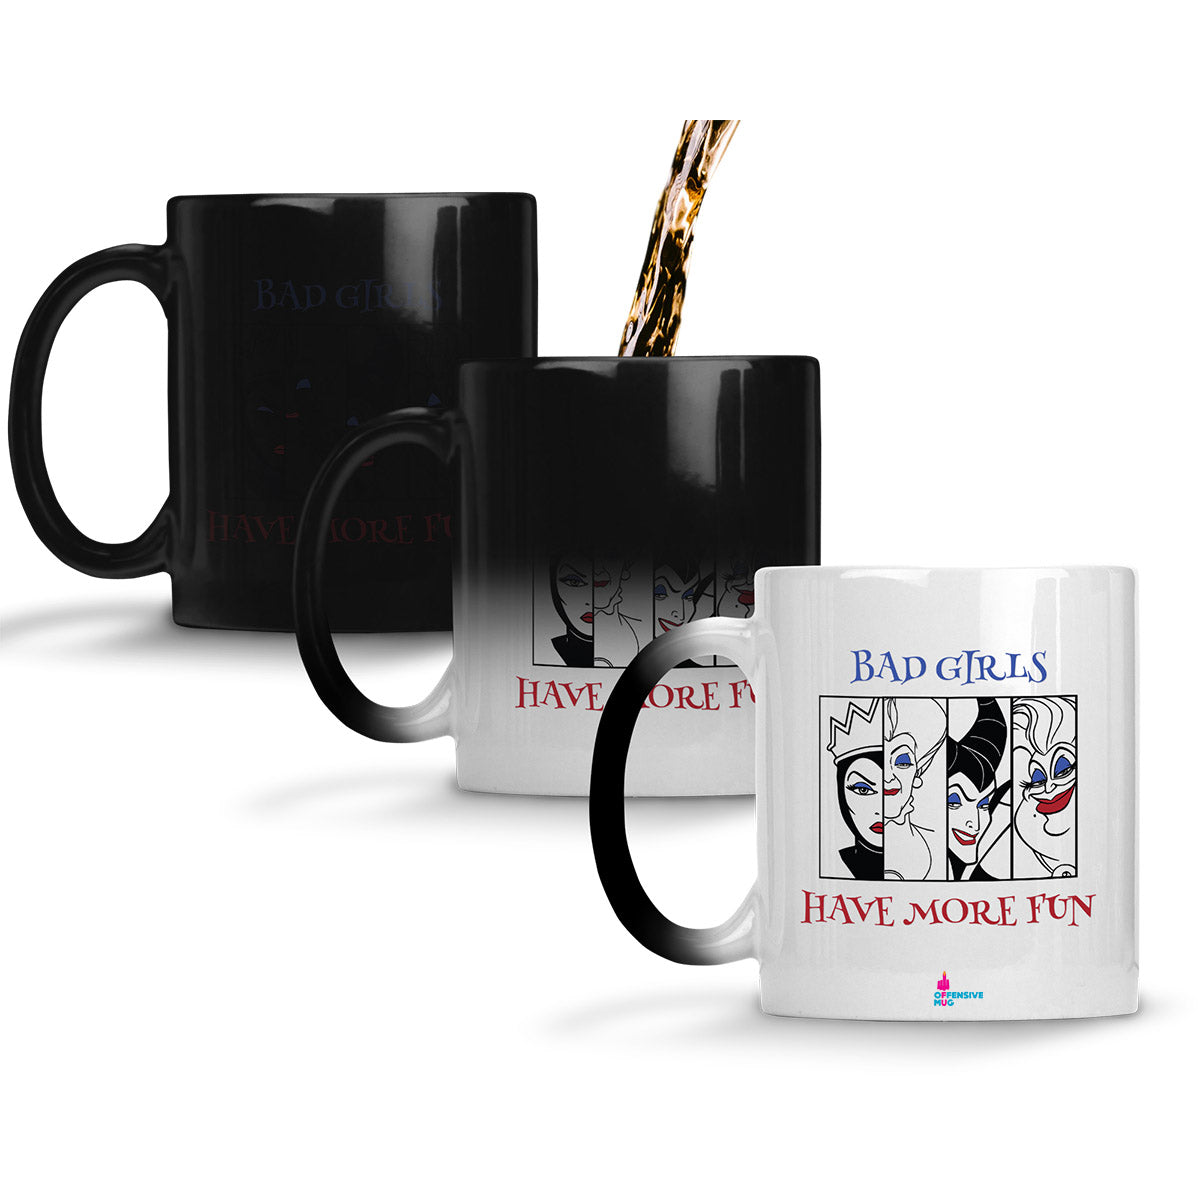 Charlie Magic Mug - Offensive Mug